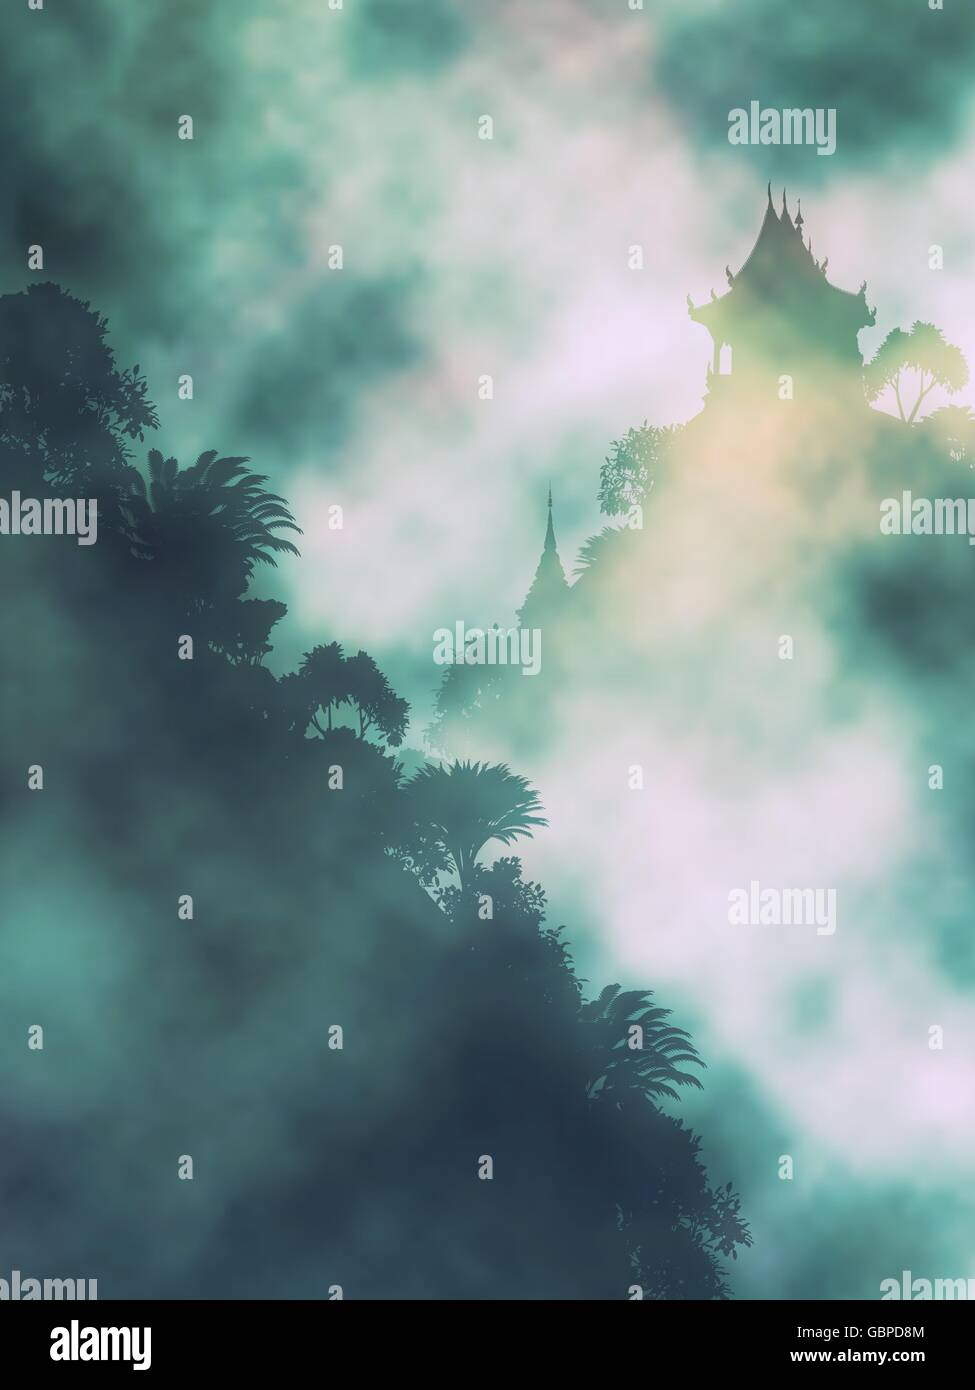 Editable vector illustration of a Buddhist temple in misty mountains made using gradient meshes Stock Vector